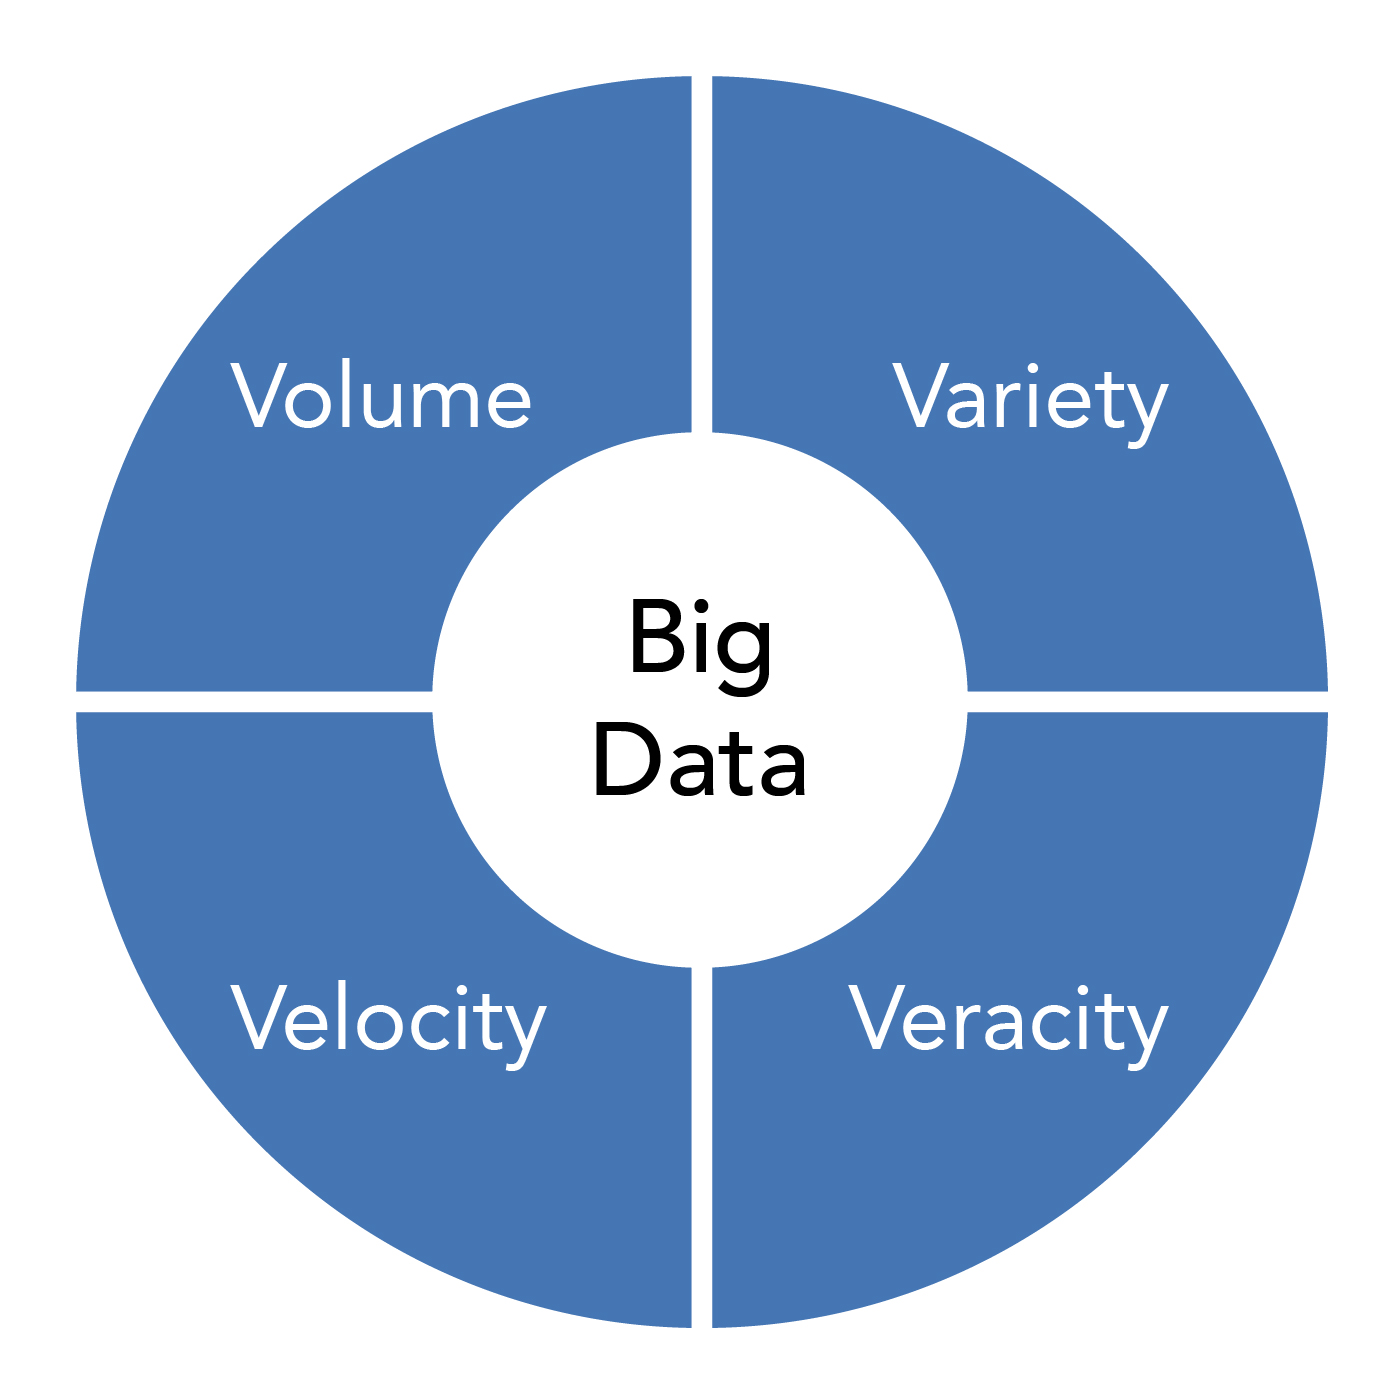 Chart showing the four pieces of big data: volume, velocity, variety, and veracity.